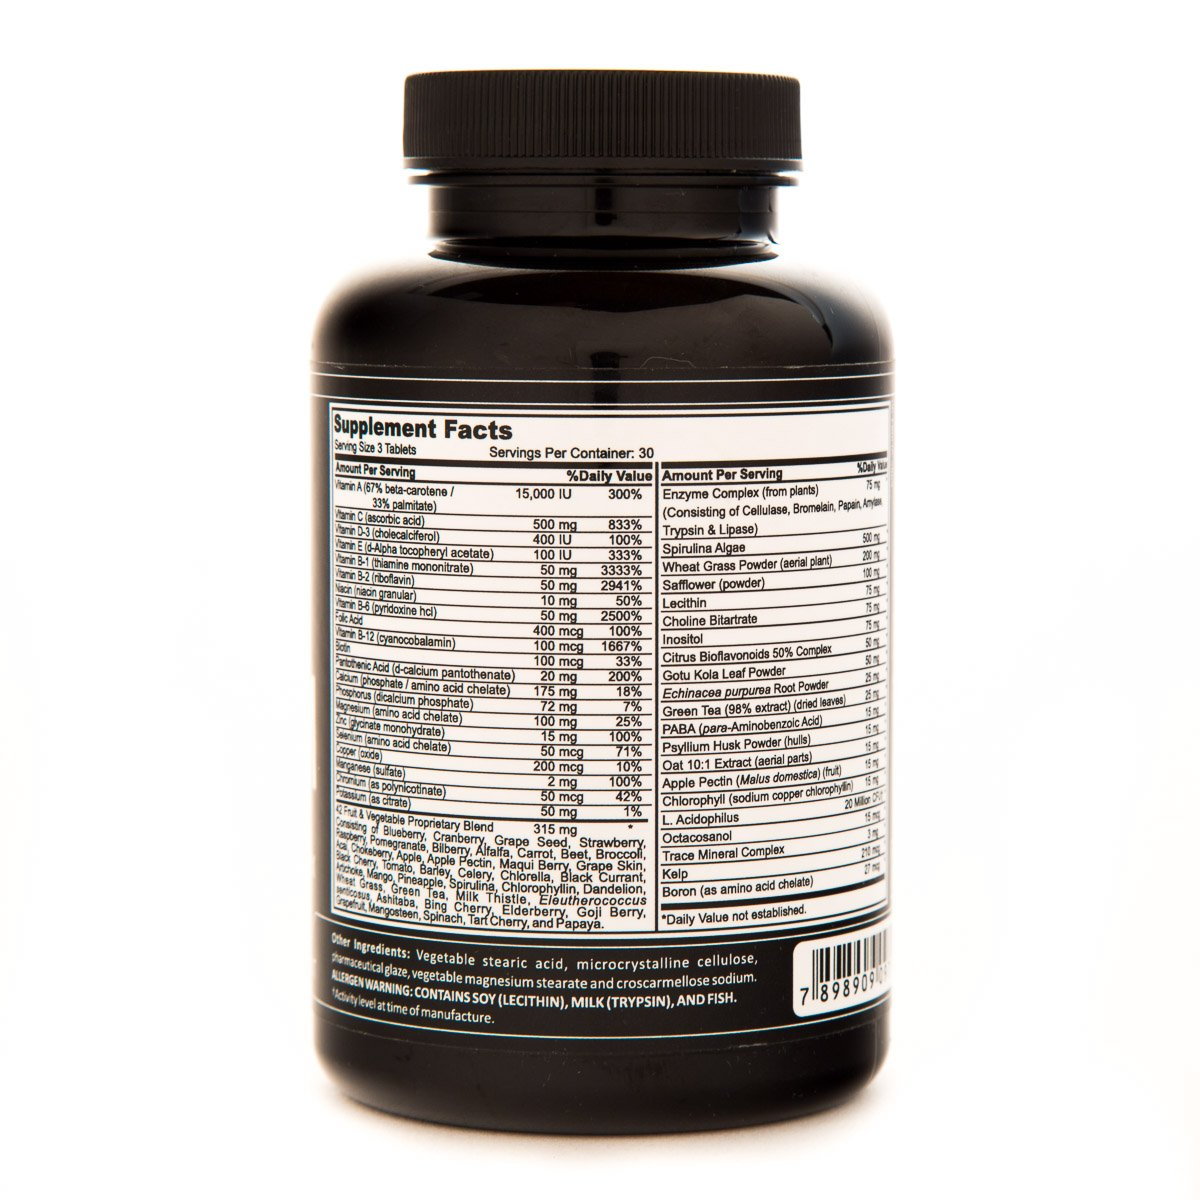 Amazon.com: Daily Mutivitamin and Mineral Complex -USA Made- General Health - GMP Certified - 90 Tablets: Health & Personal Care